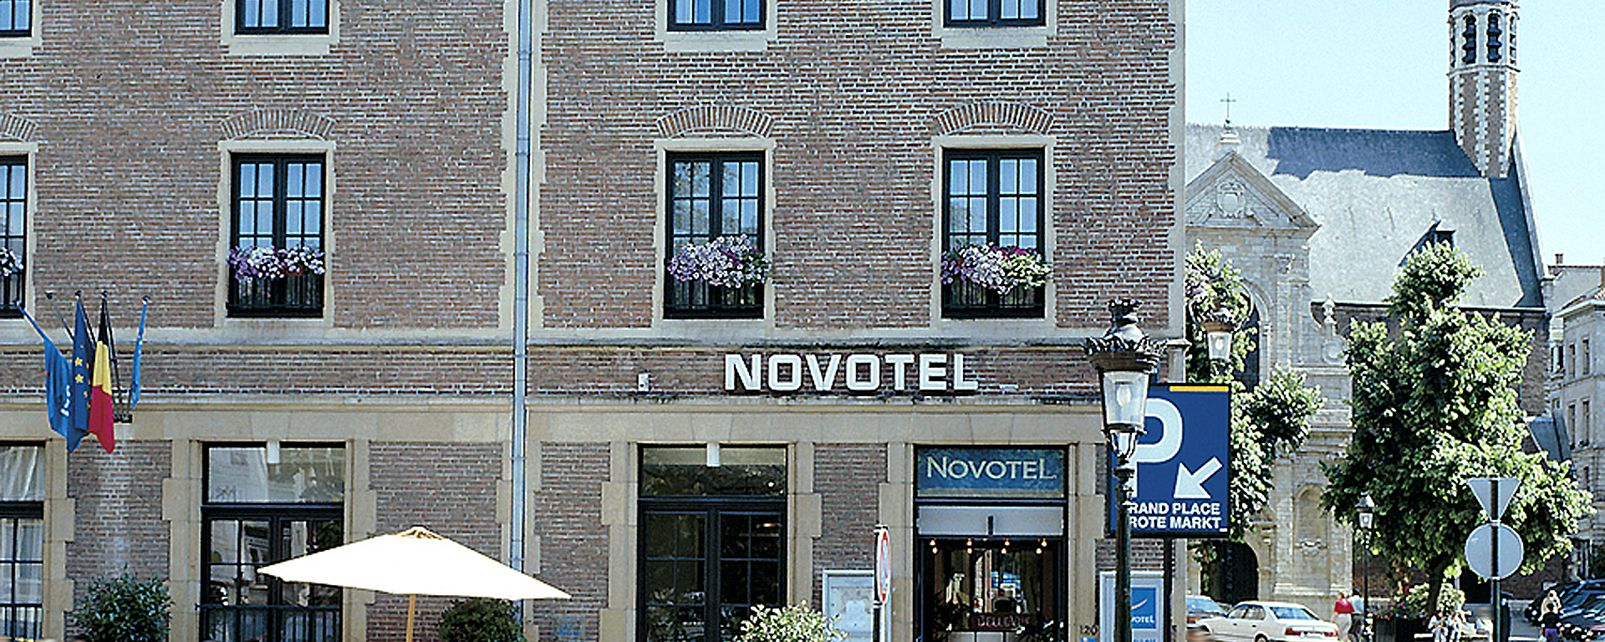 Hotel Novotel off Grand'Place